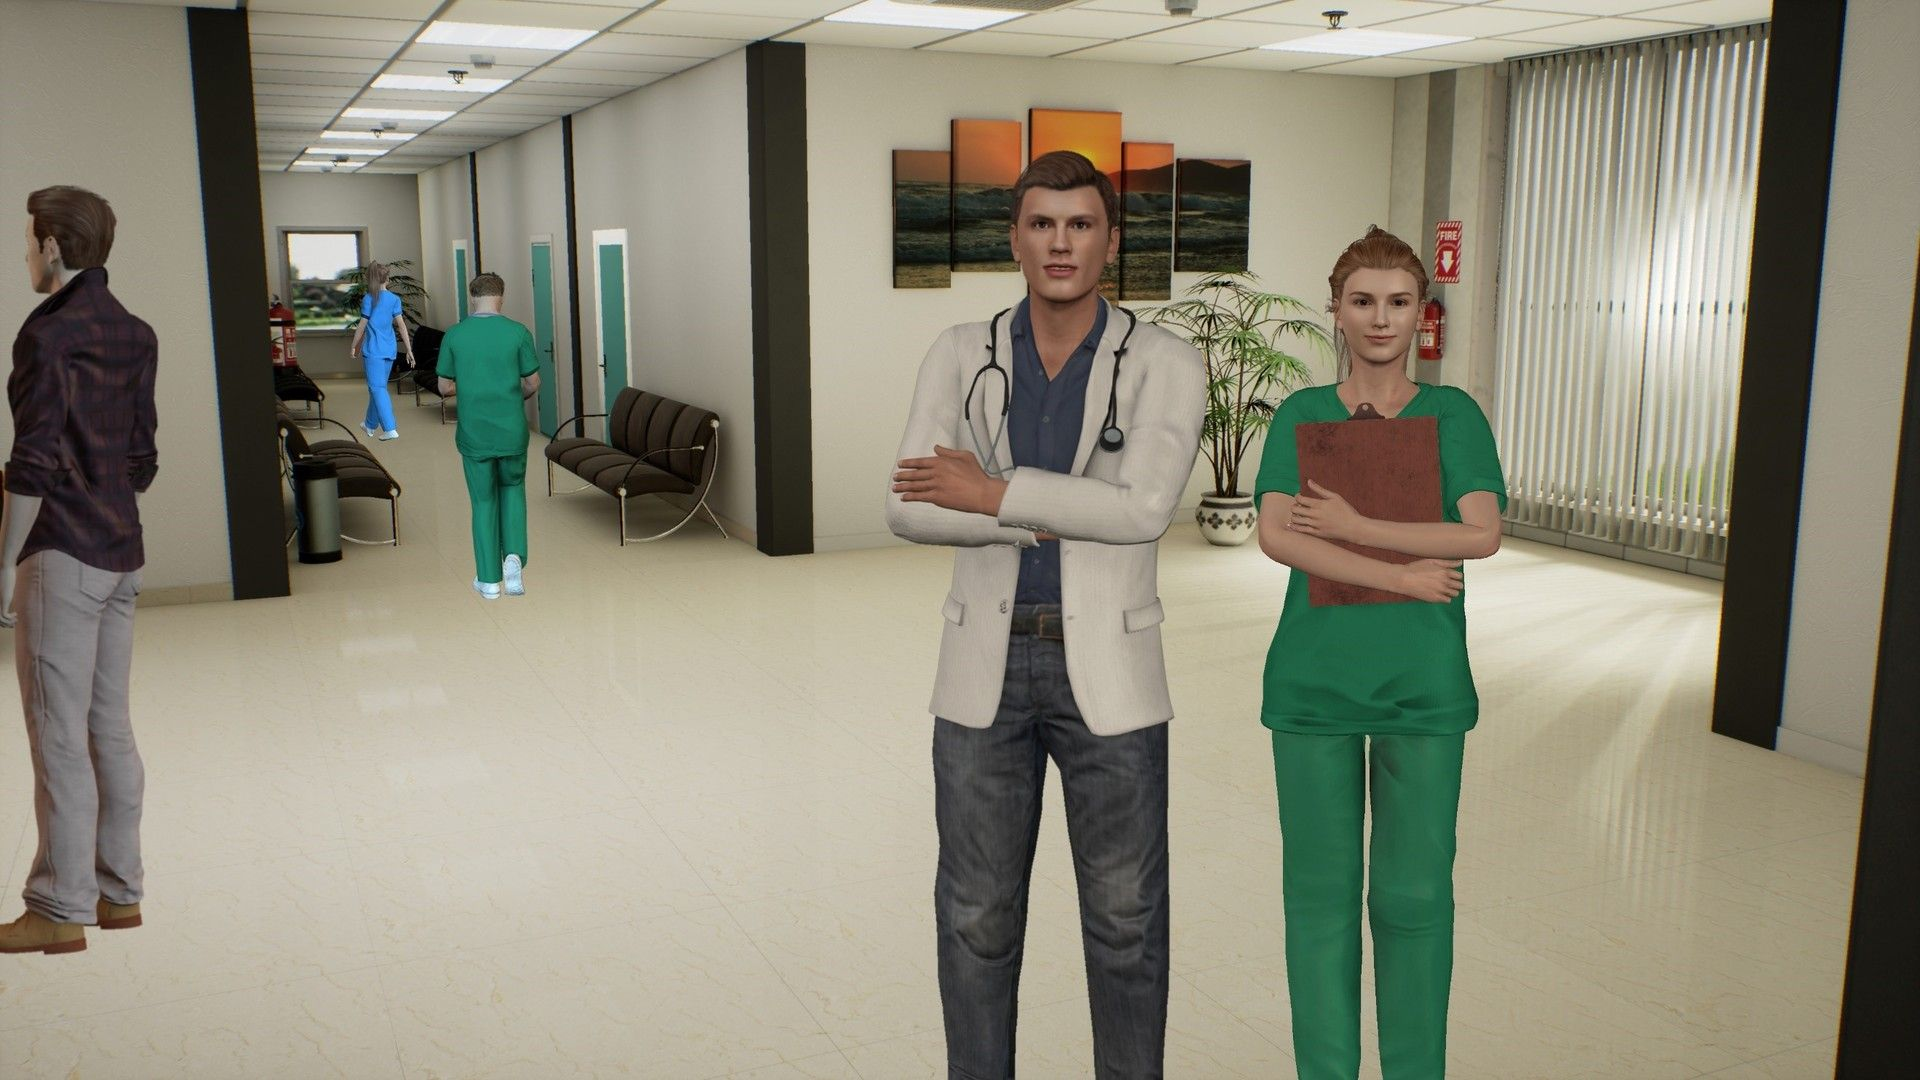 Figure 1: Virtual 3D characters in a hospital setup.